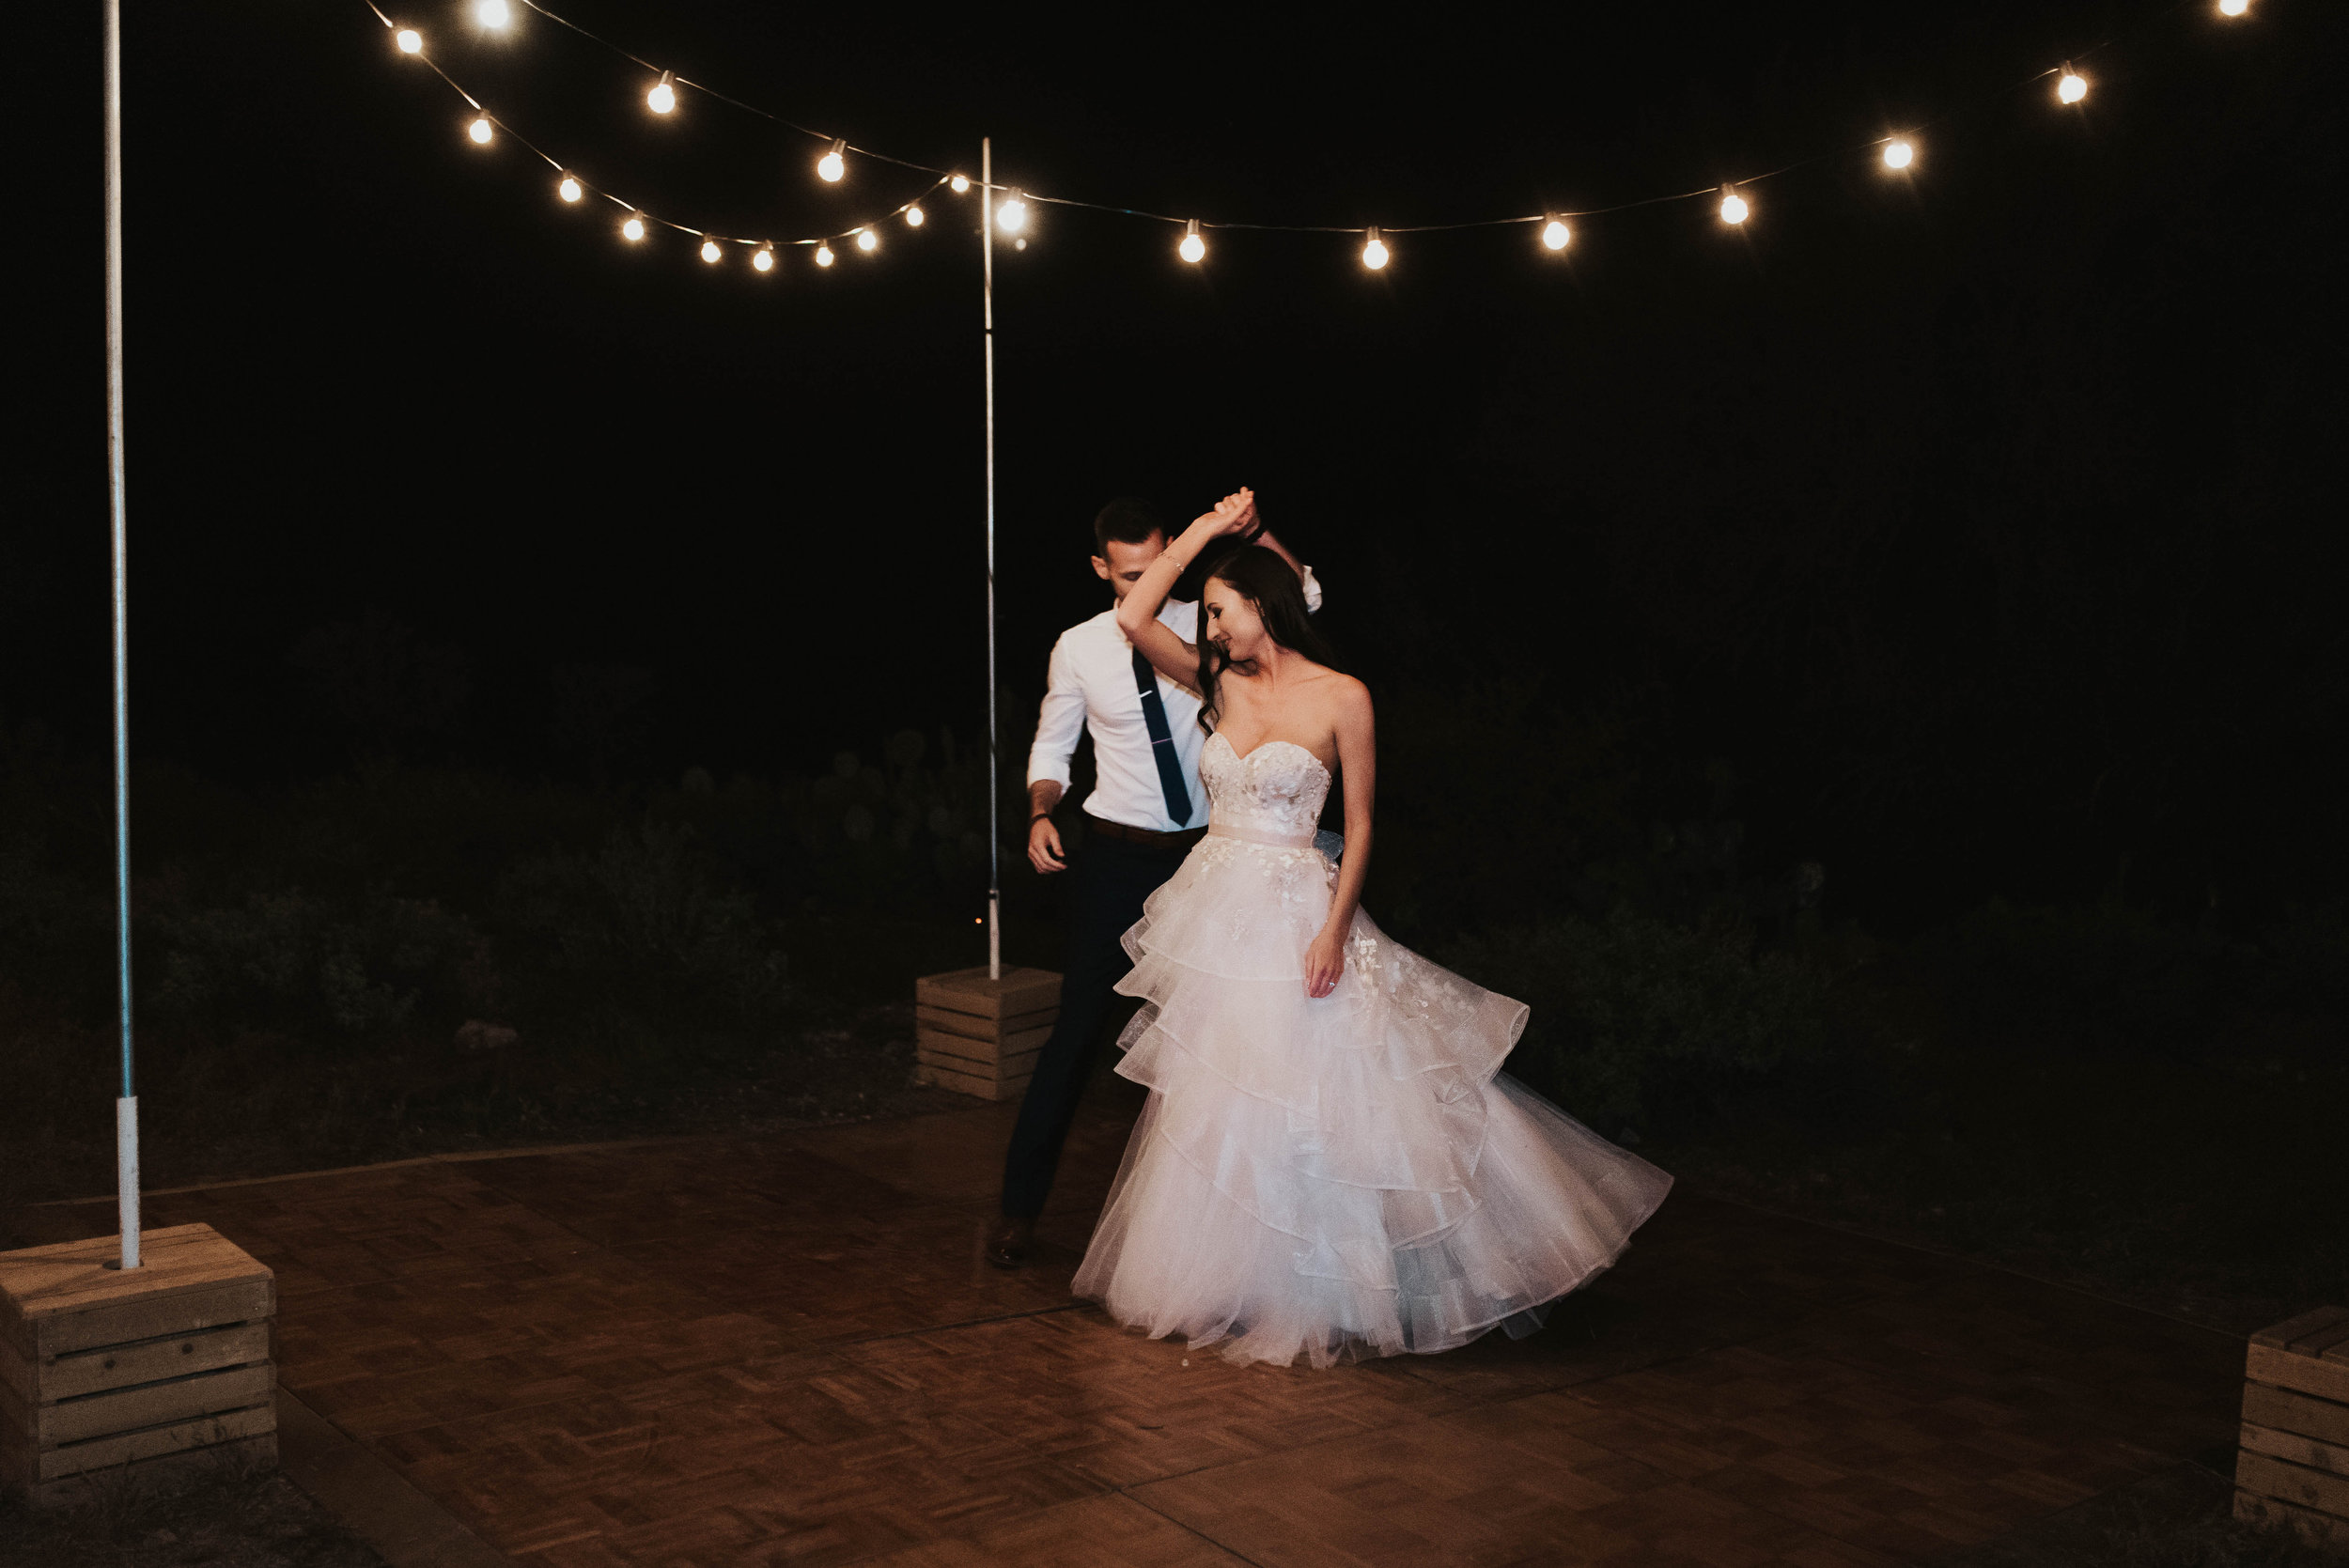 Desert Wedding at Tela Peralta - Arizona florist Phoenix scottsdale Mesa chandler Sedona Flagstaff Prescott - Dancing Under the Stars